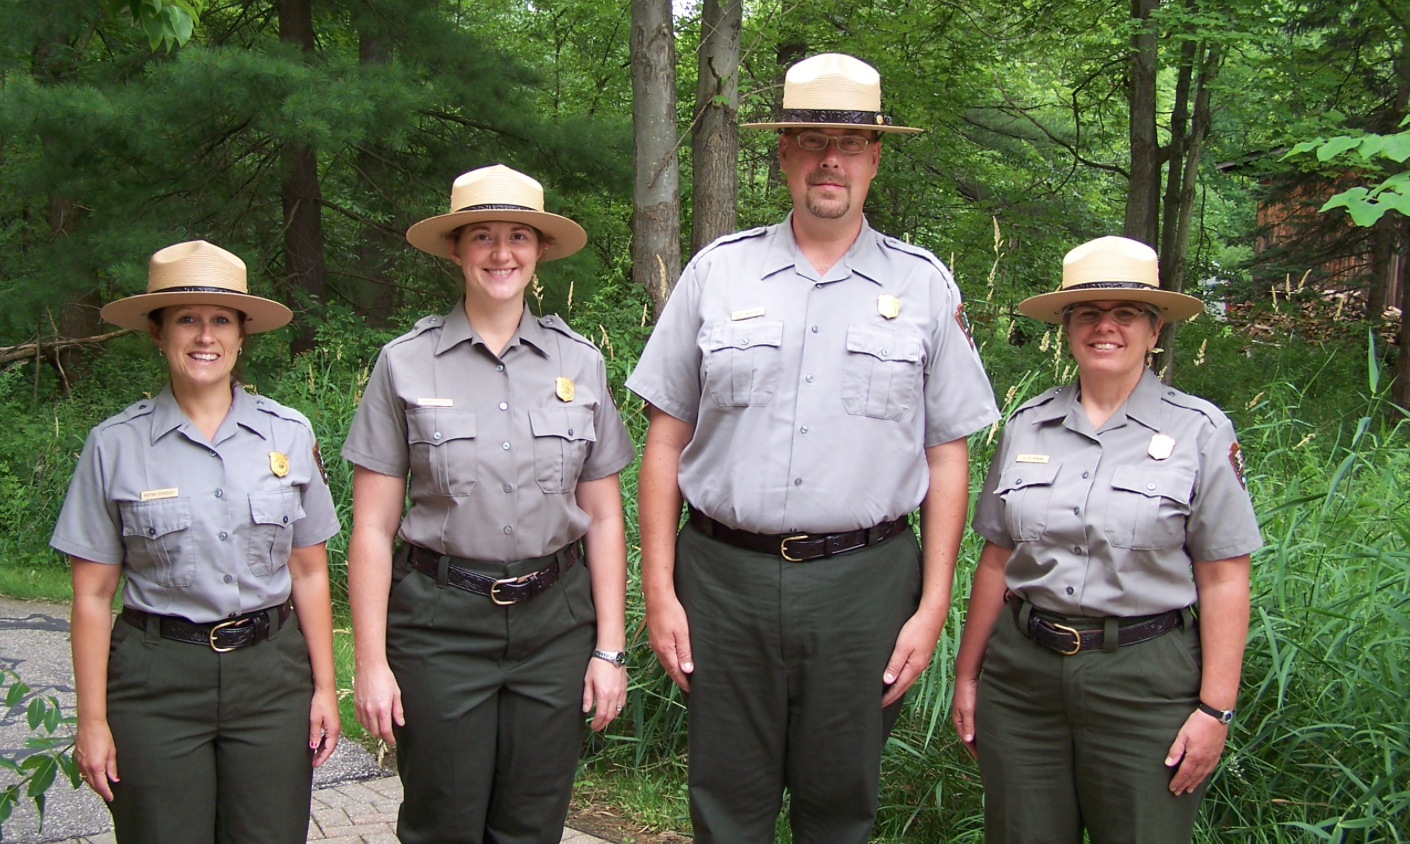 park ranger Spend a glorious summer working as a park ranger searching for hidden objects in a stunning national park visit areas of outstanding natural beauty including gorgeous forests, idyllic lakes, cool woodland trails and awesome mountain vistas.